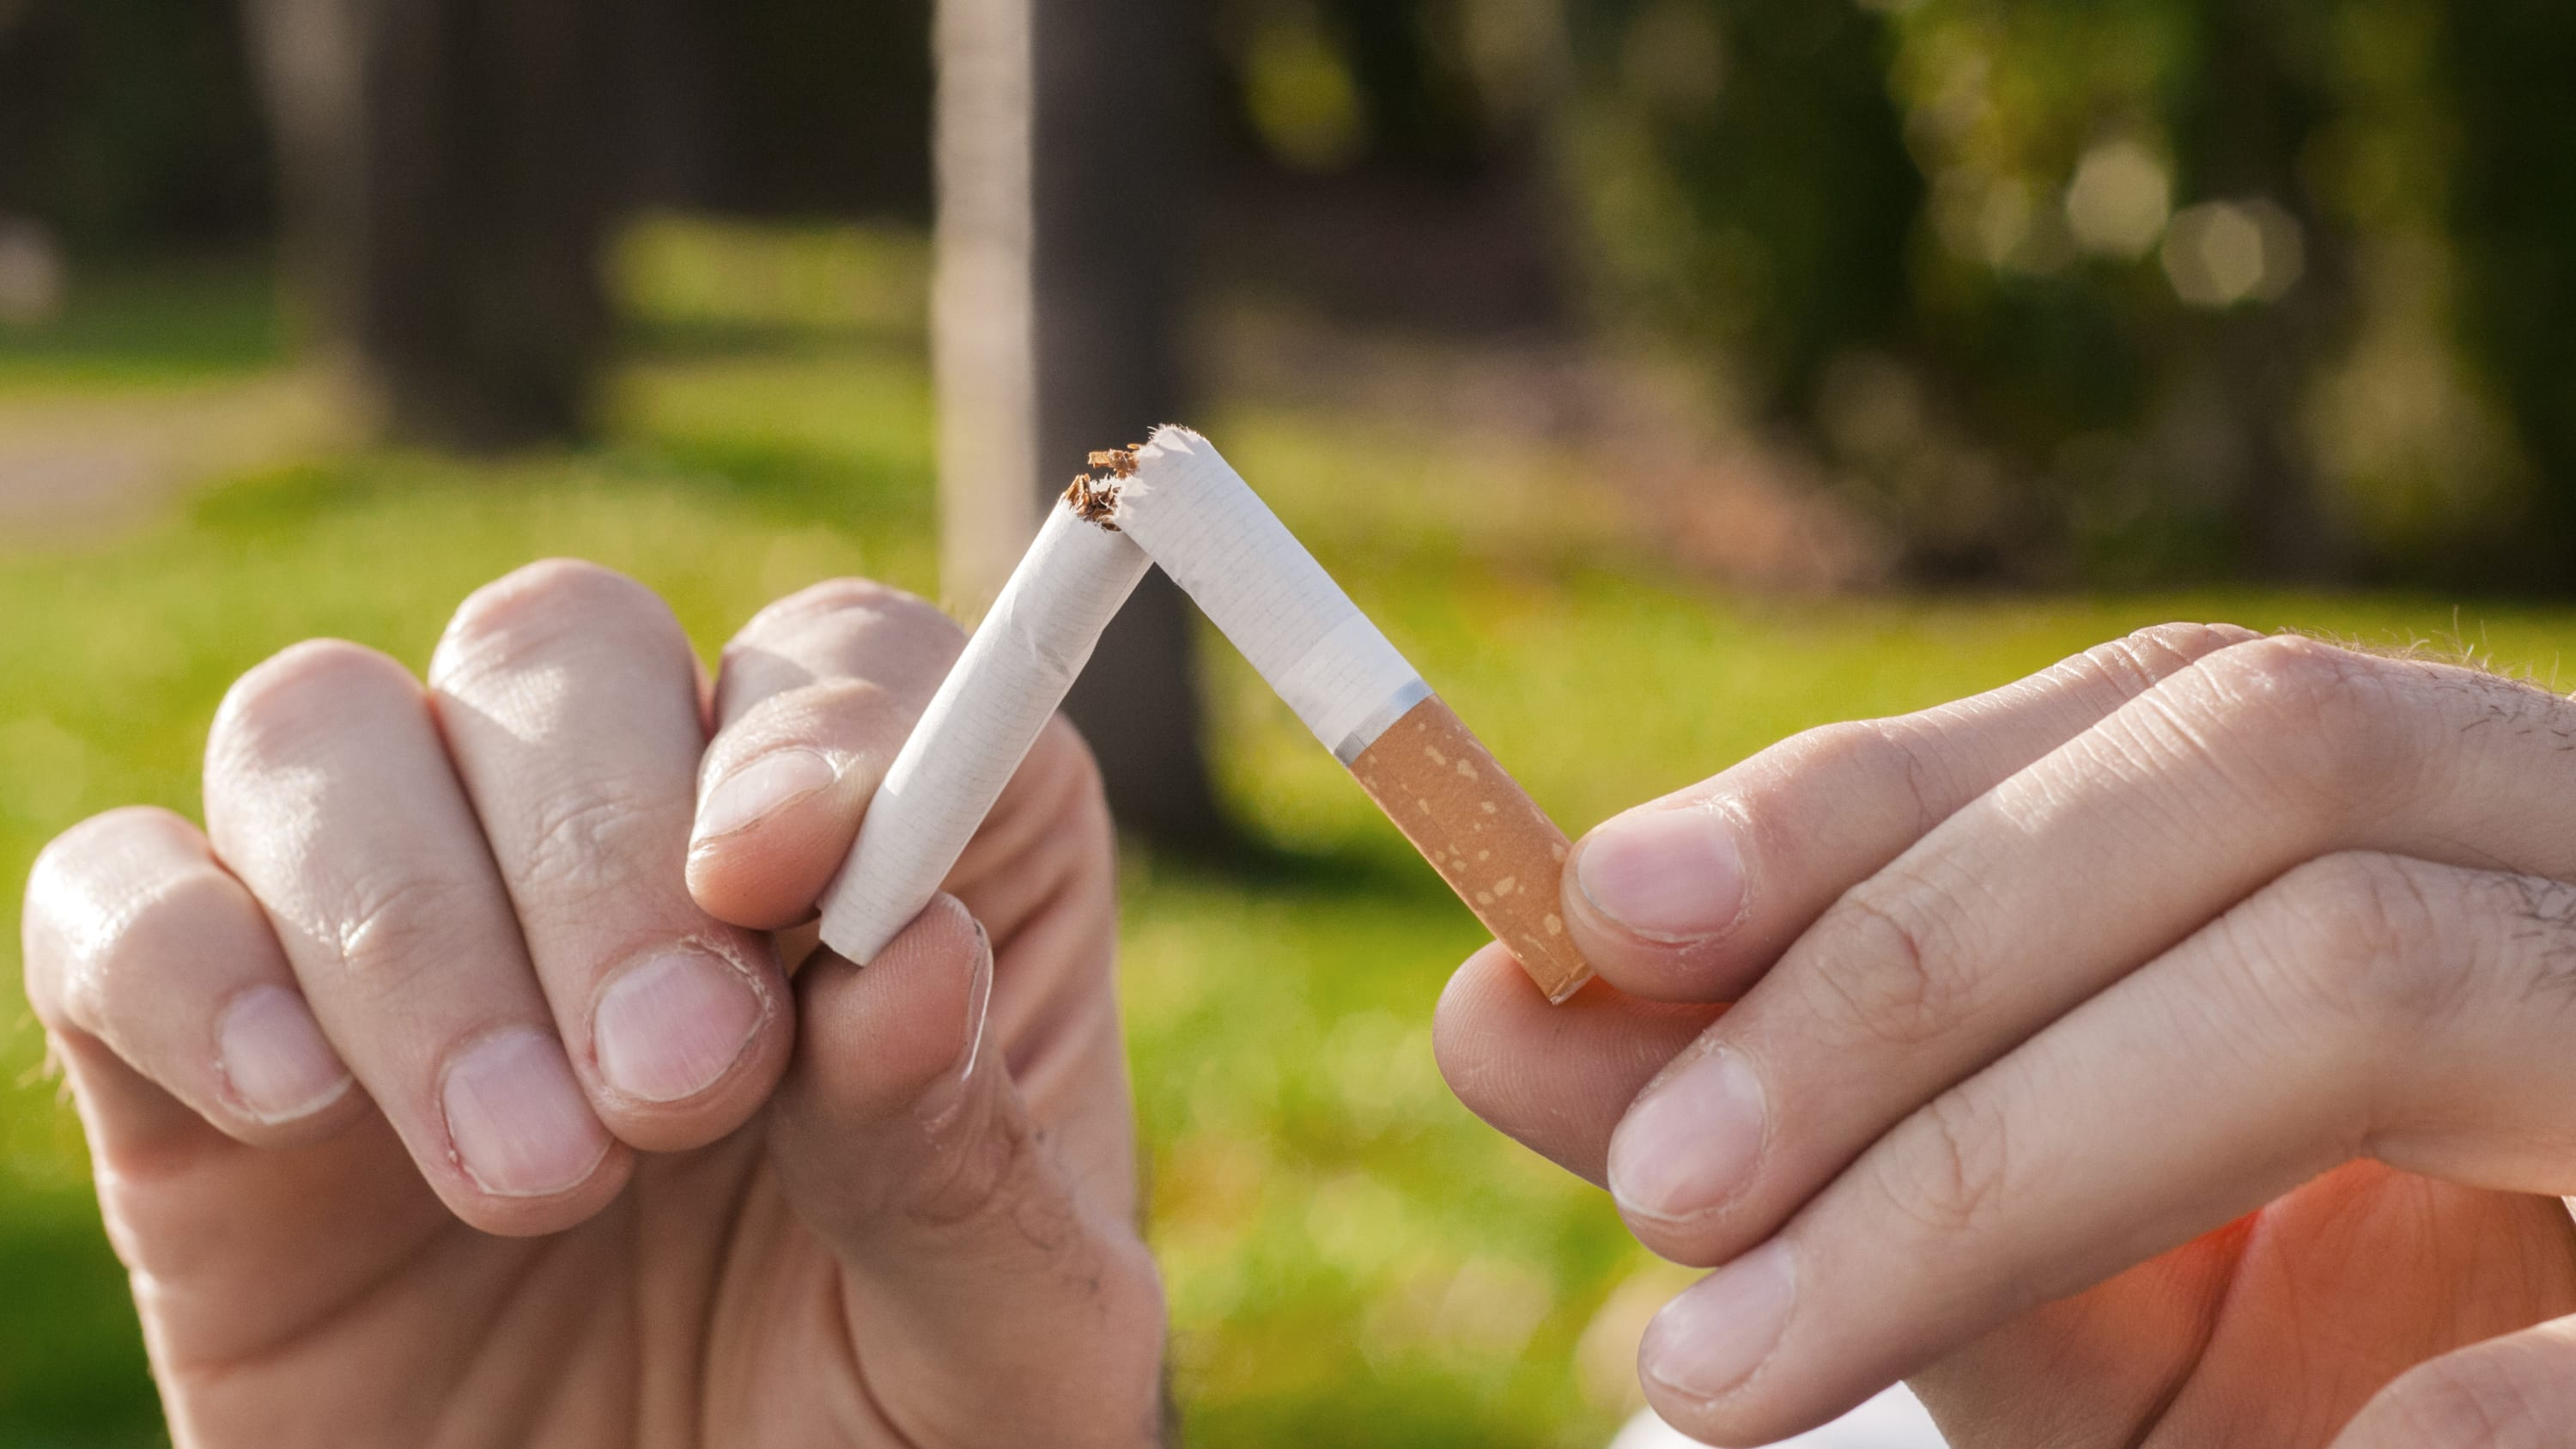 Two hands breaking a cigarette after a lung cancer screening